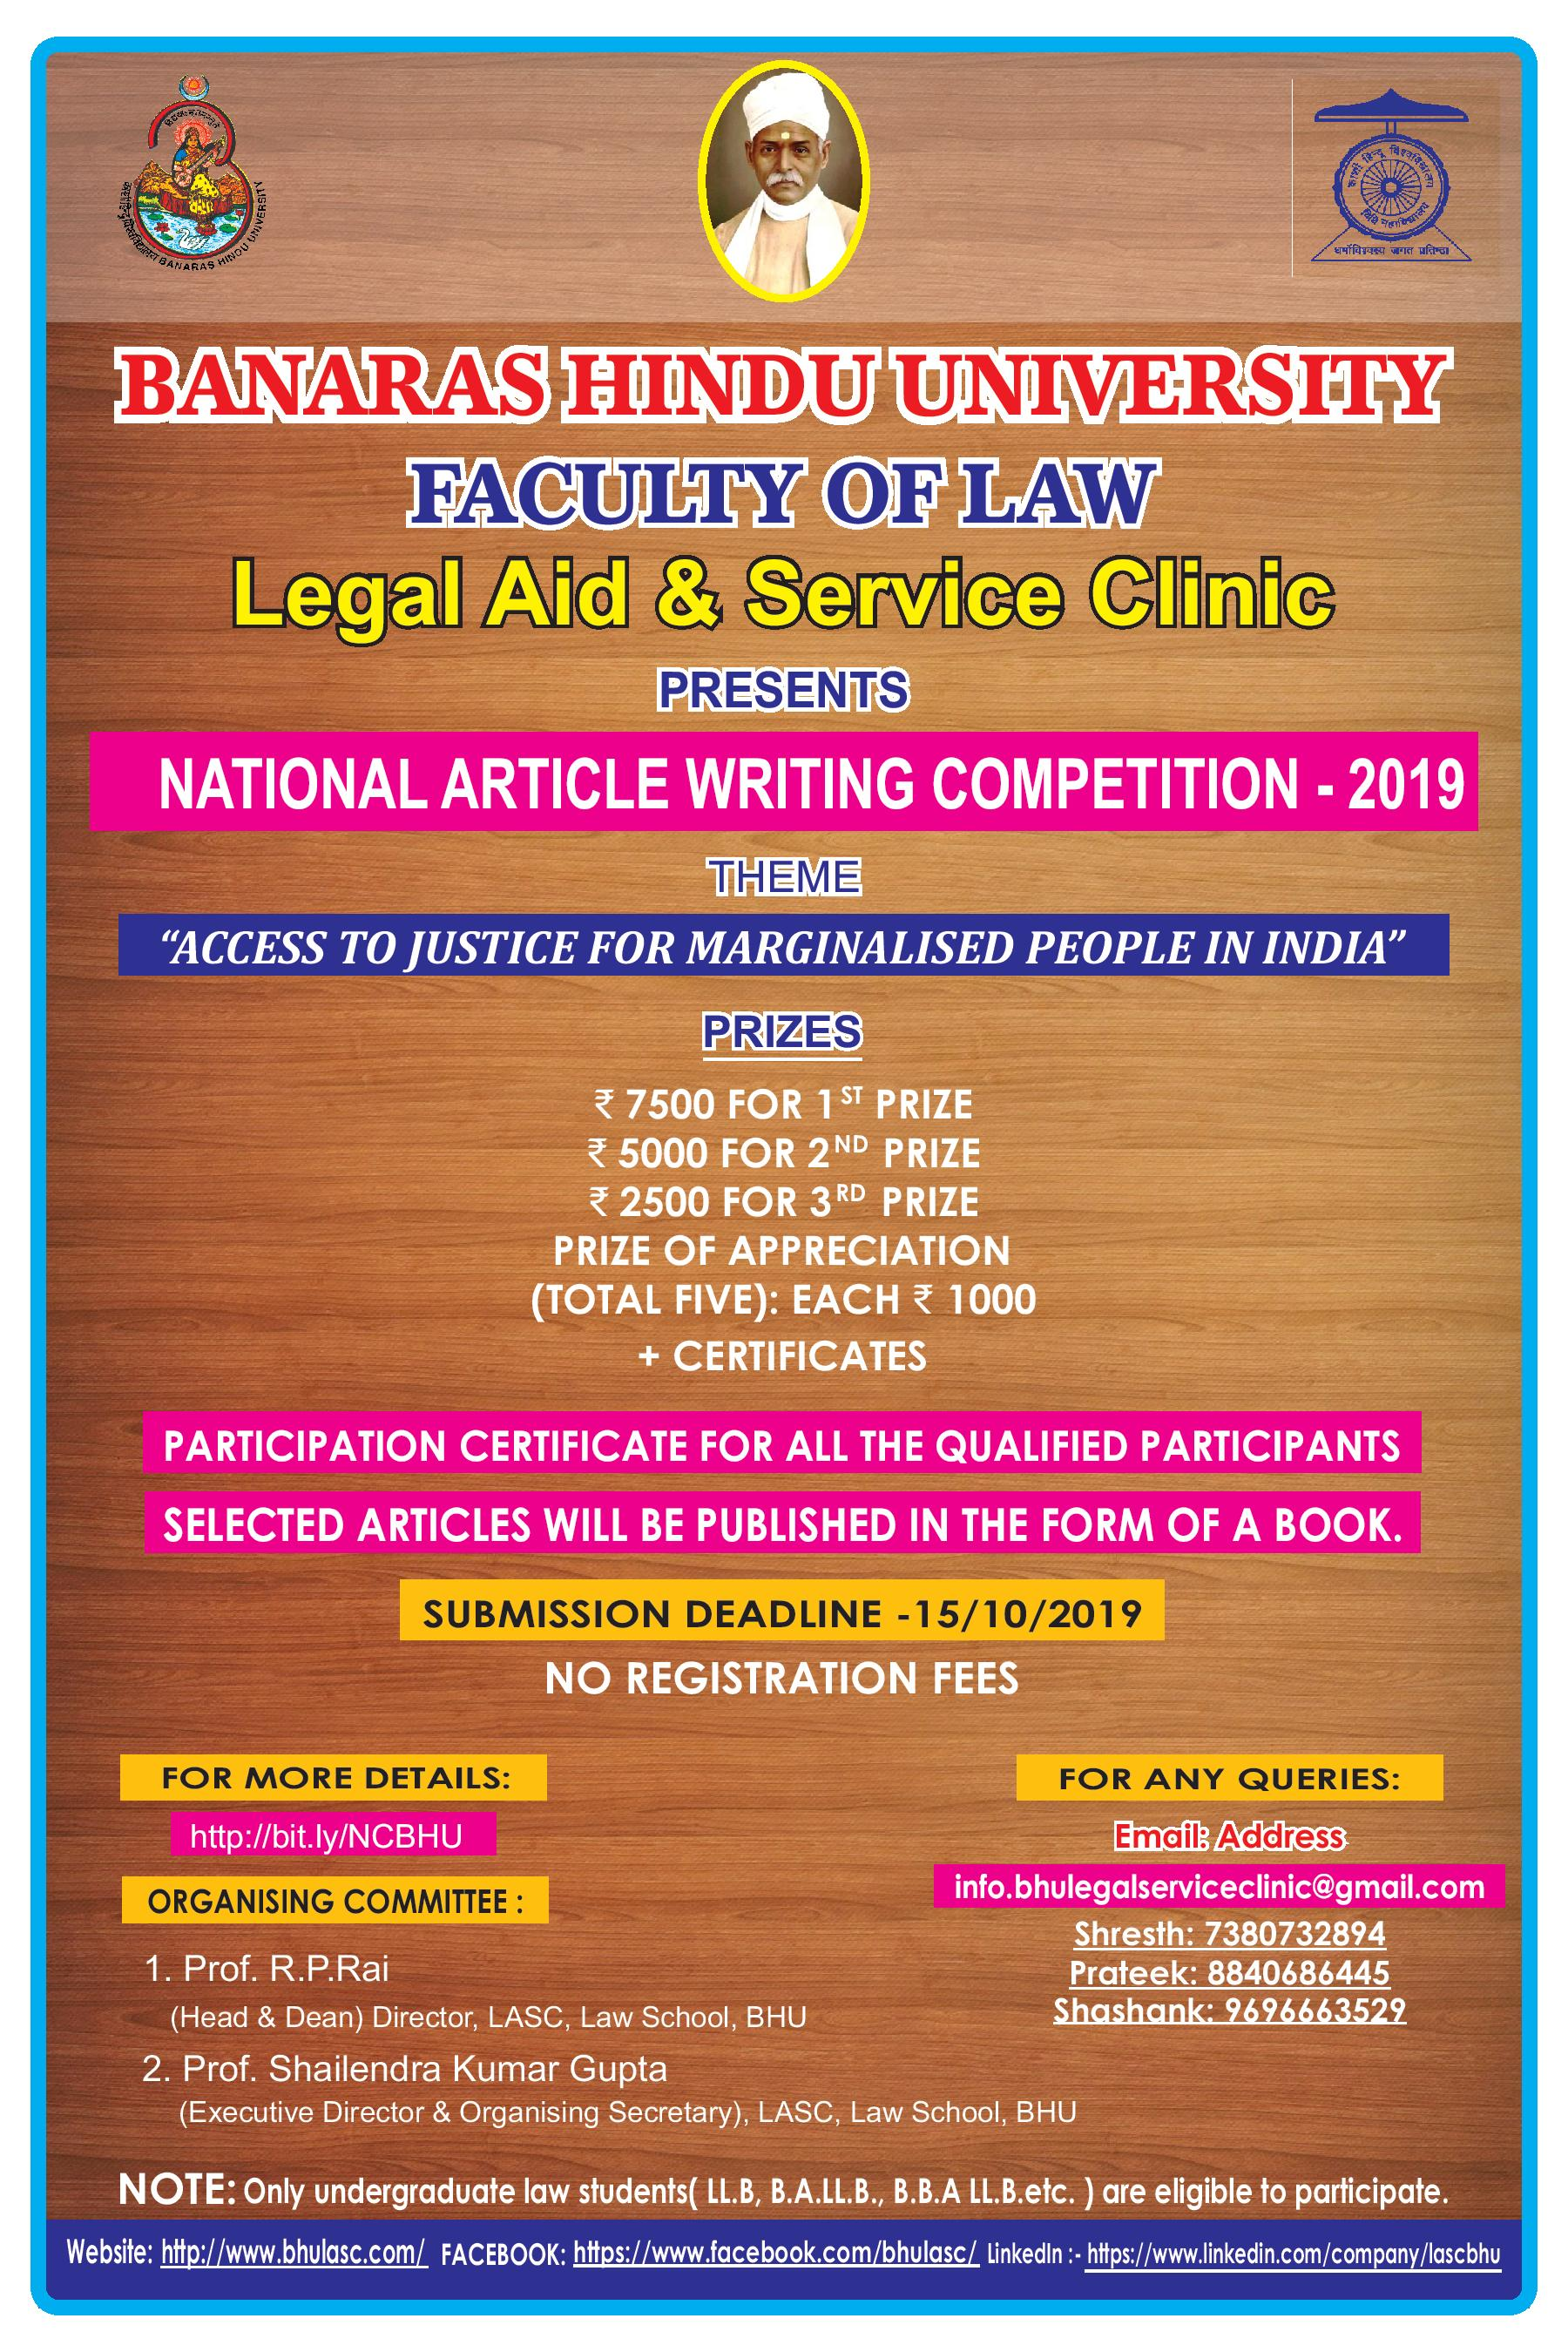 National Article Writing Competition by Banaras Hindu University, Varanasi: Submit by Oct 15